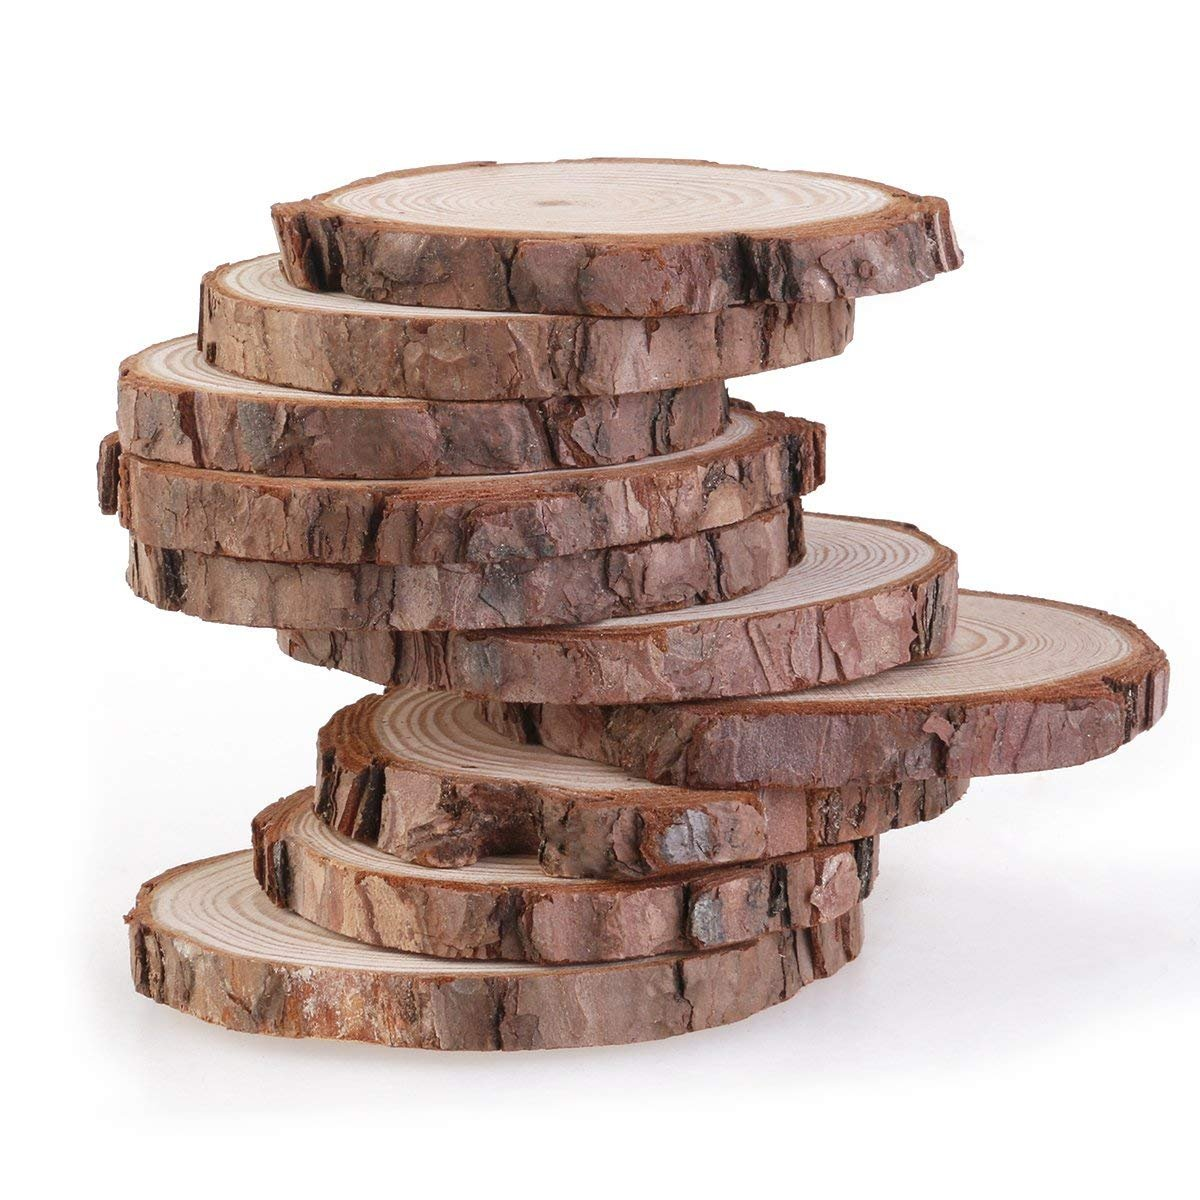 RayLineDo/® Unfinished Natural Wood Slices Round Log Discs with Tree Bark Wood Pieces 5-6cm Pack of 20 for DIY Craft Wedding